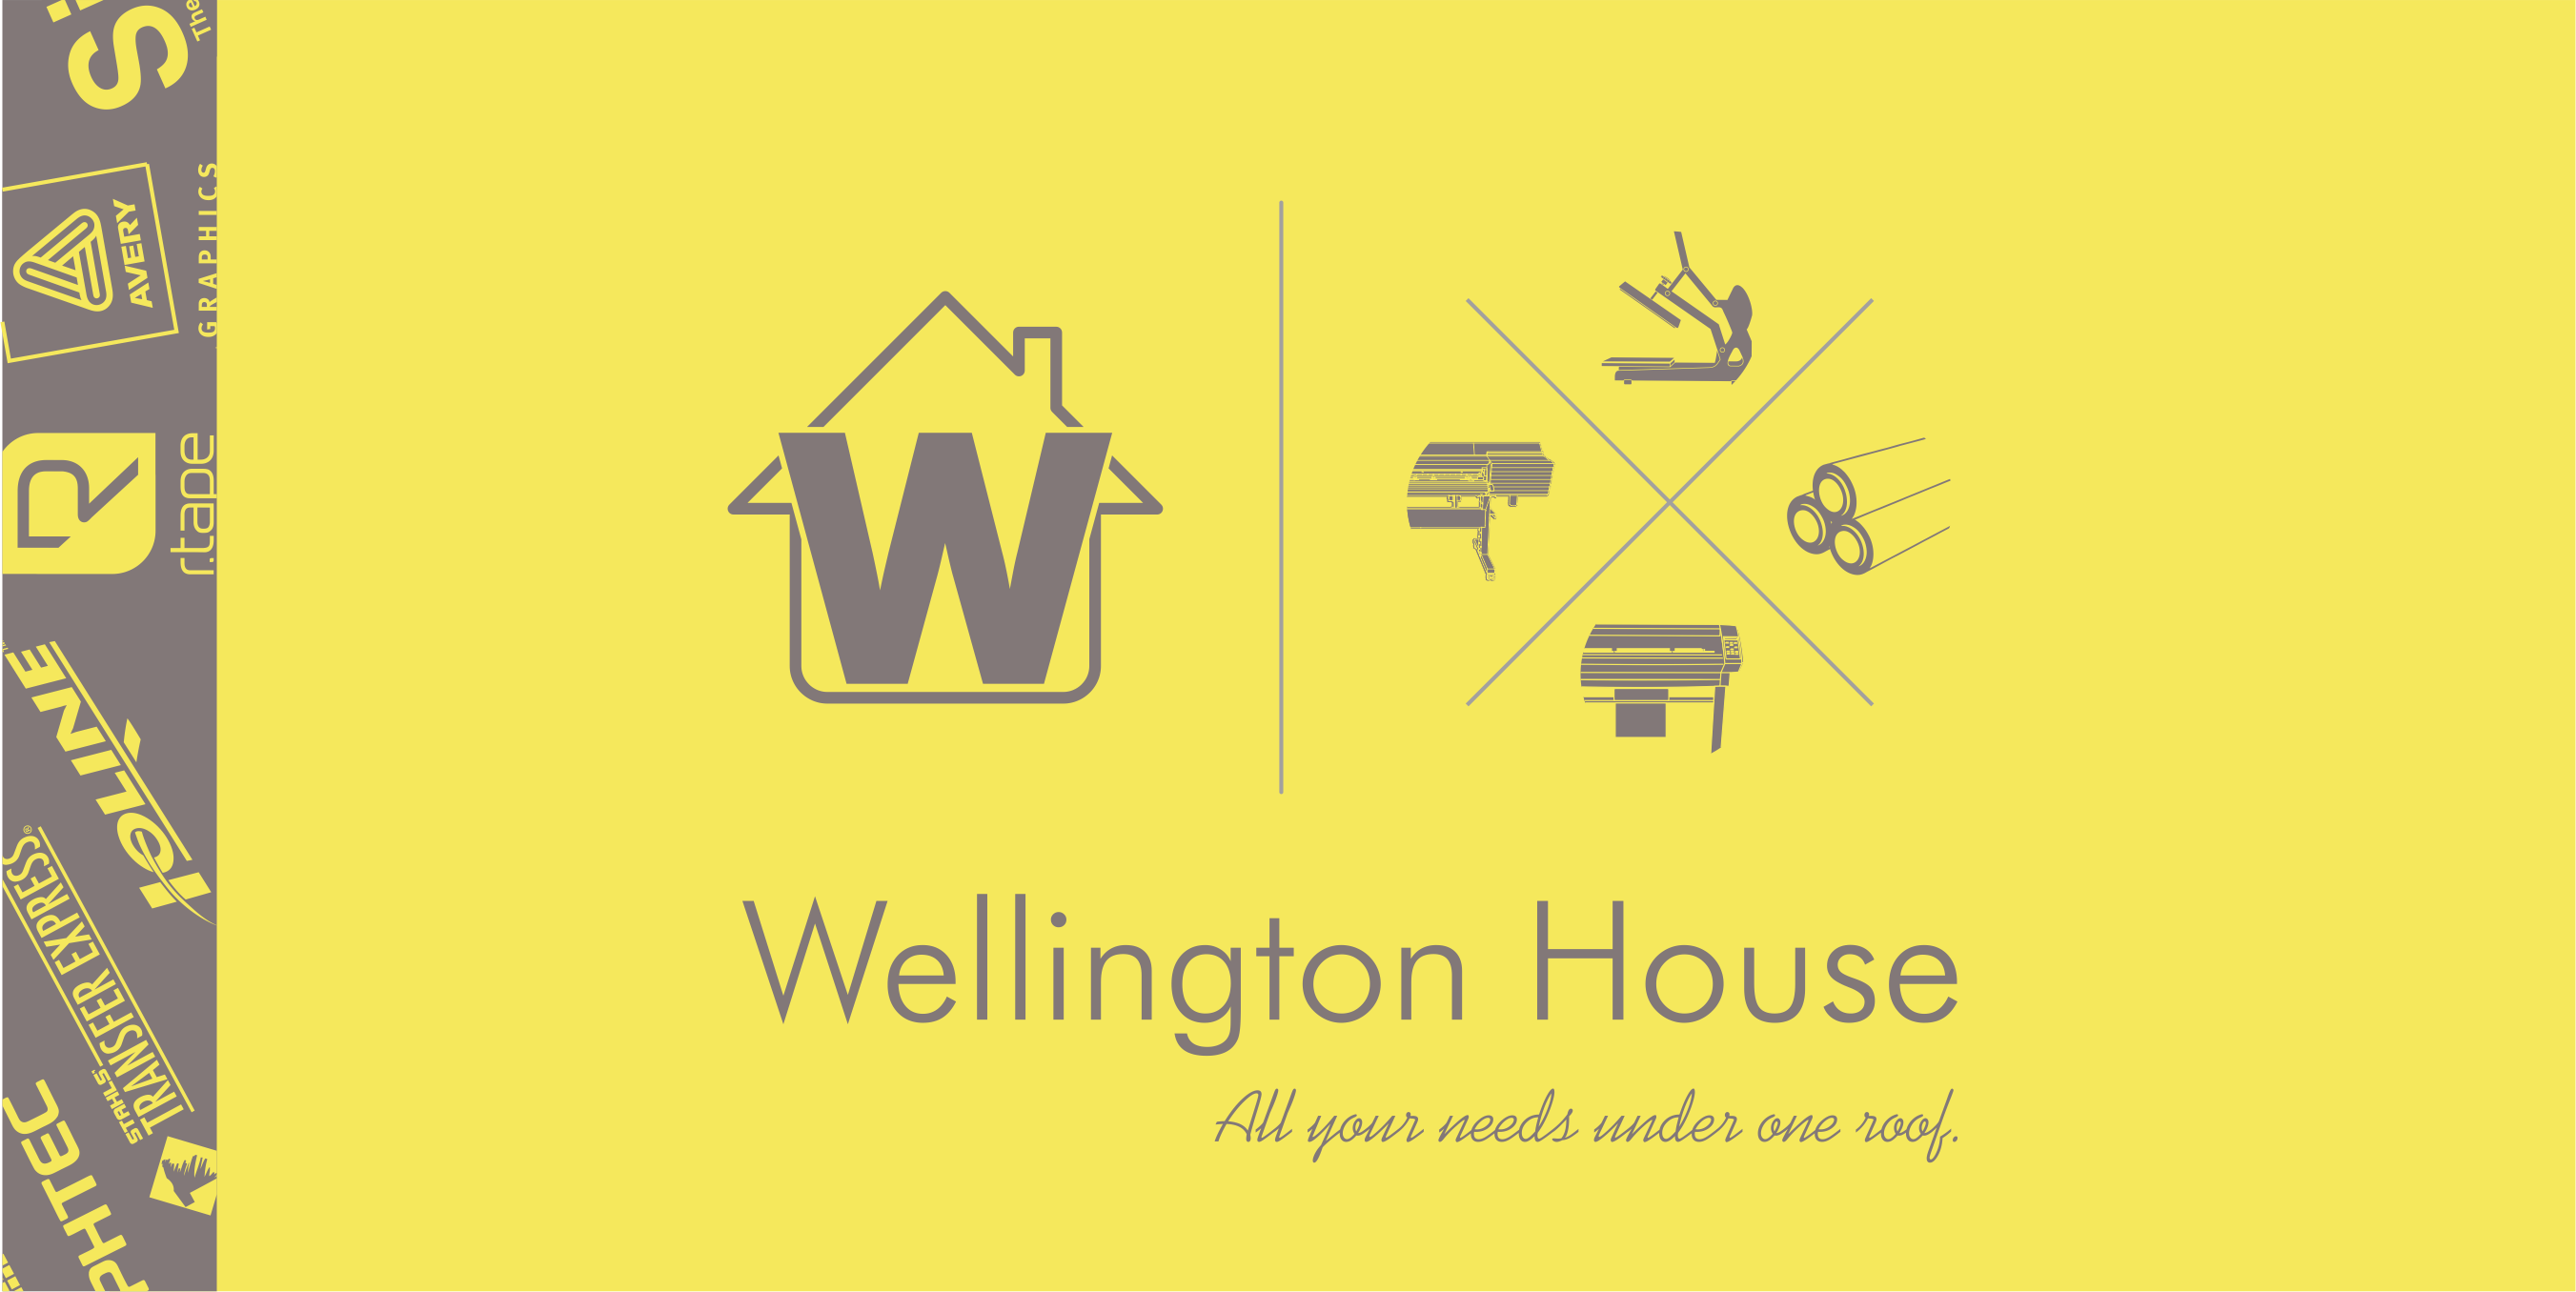 What's New For Wellington House in 2021